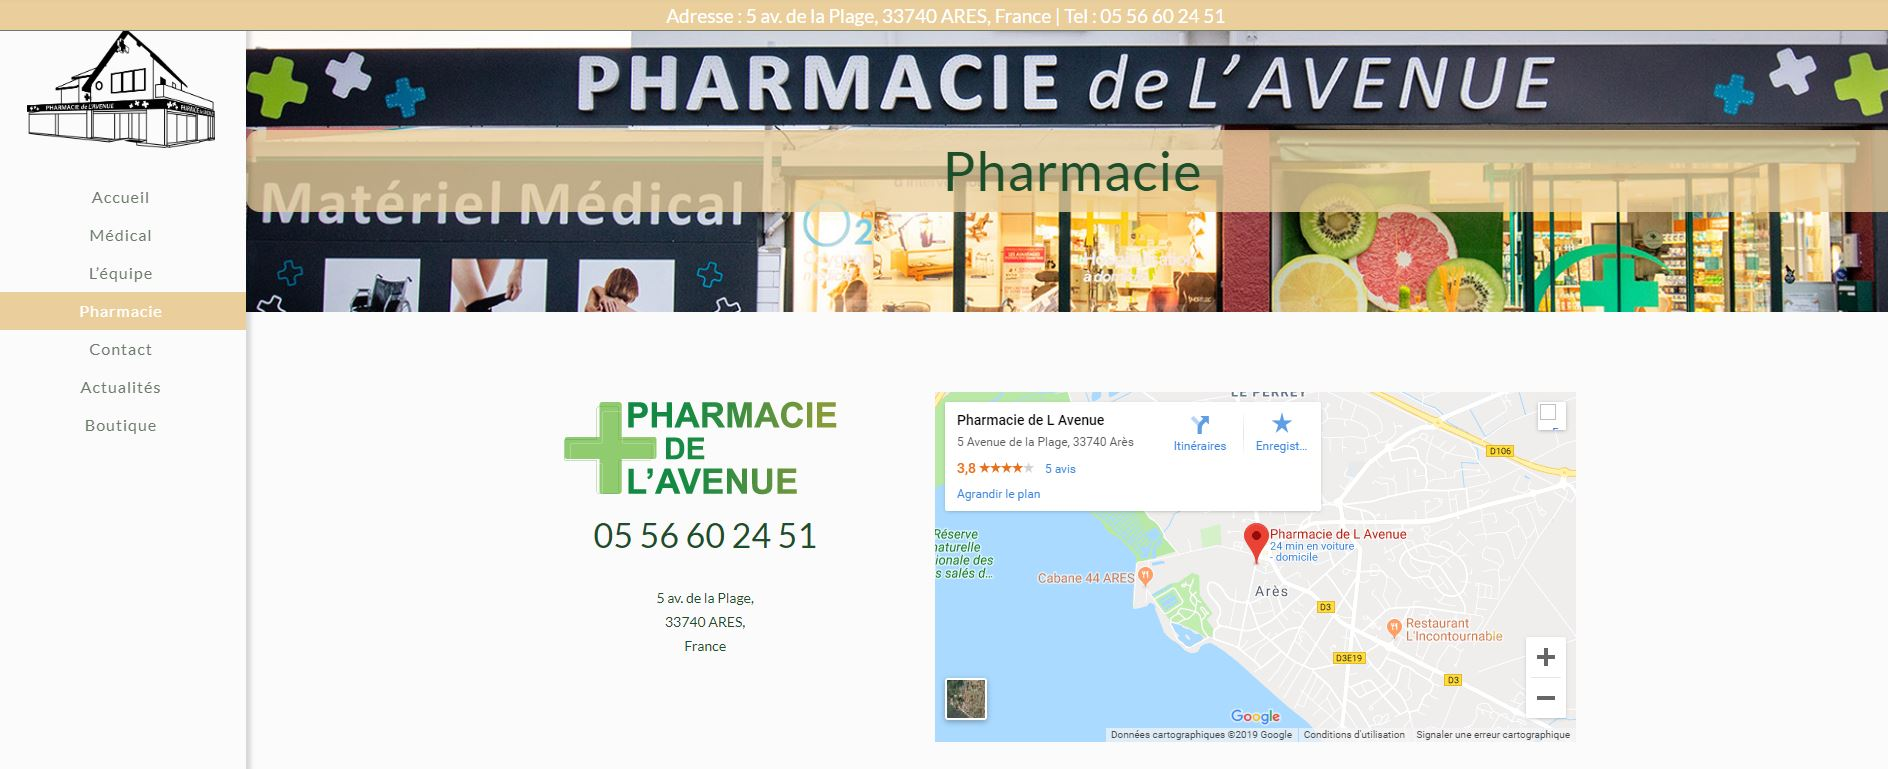 Pharmacie Ares contact